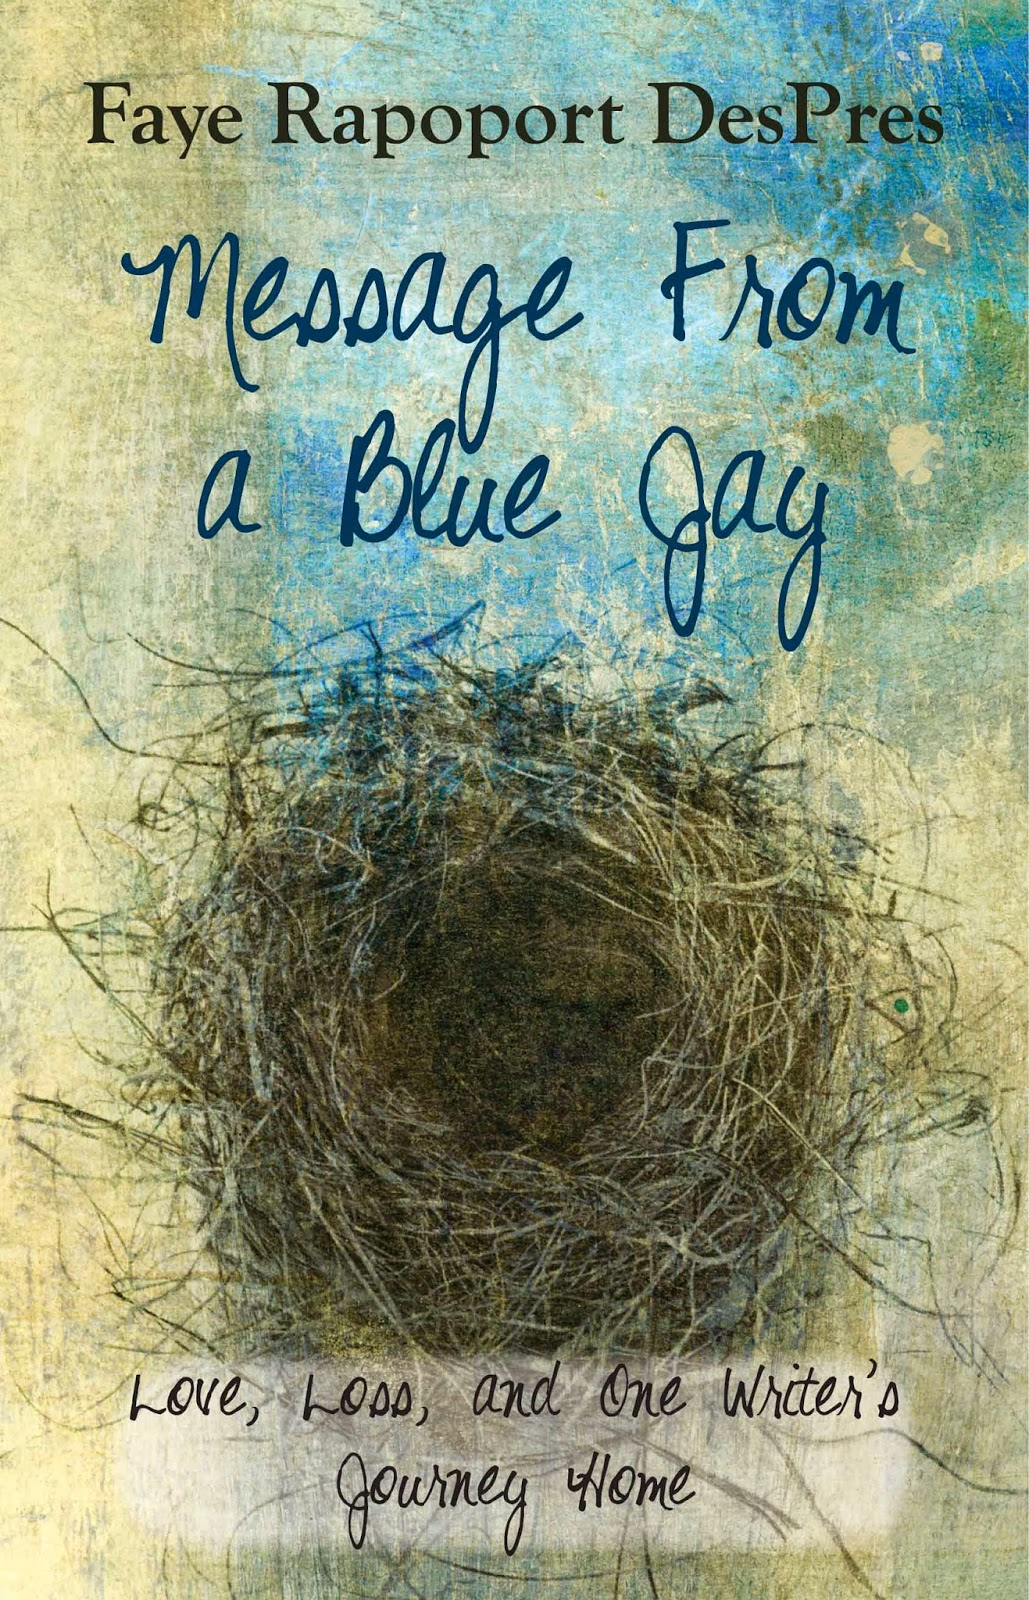 http://www.amazon.com/Message-Blue-Jay-Writers-Journey/dp/0984203524/ref=pd_rhf_se_p_dnr_1